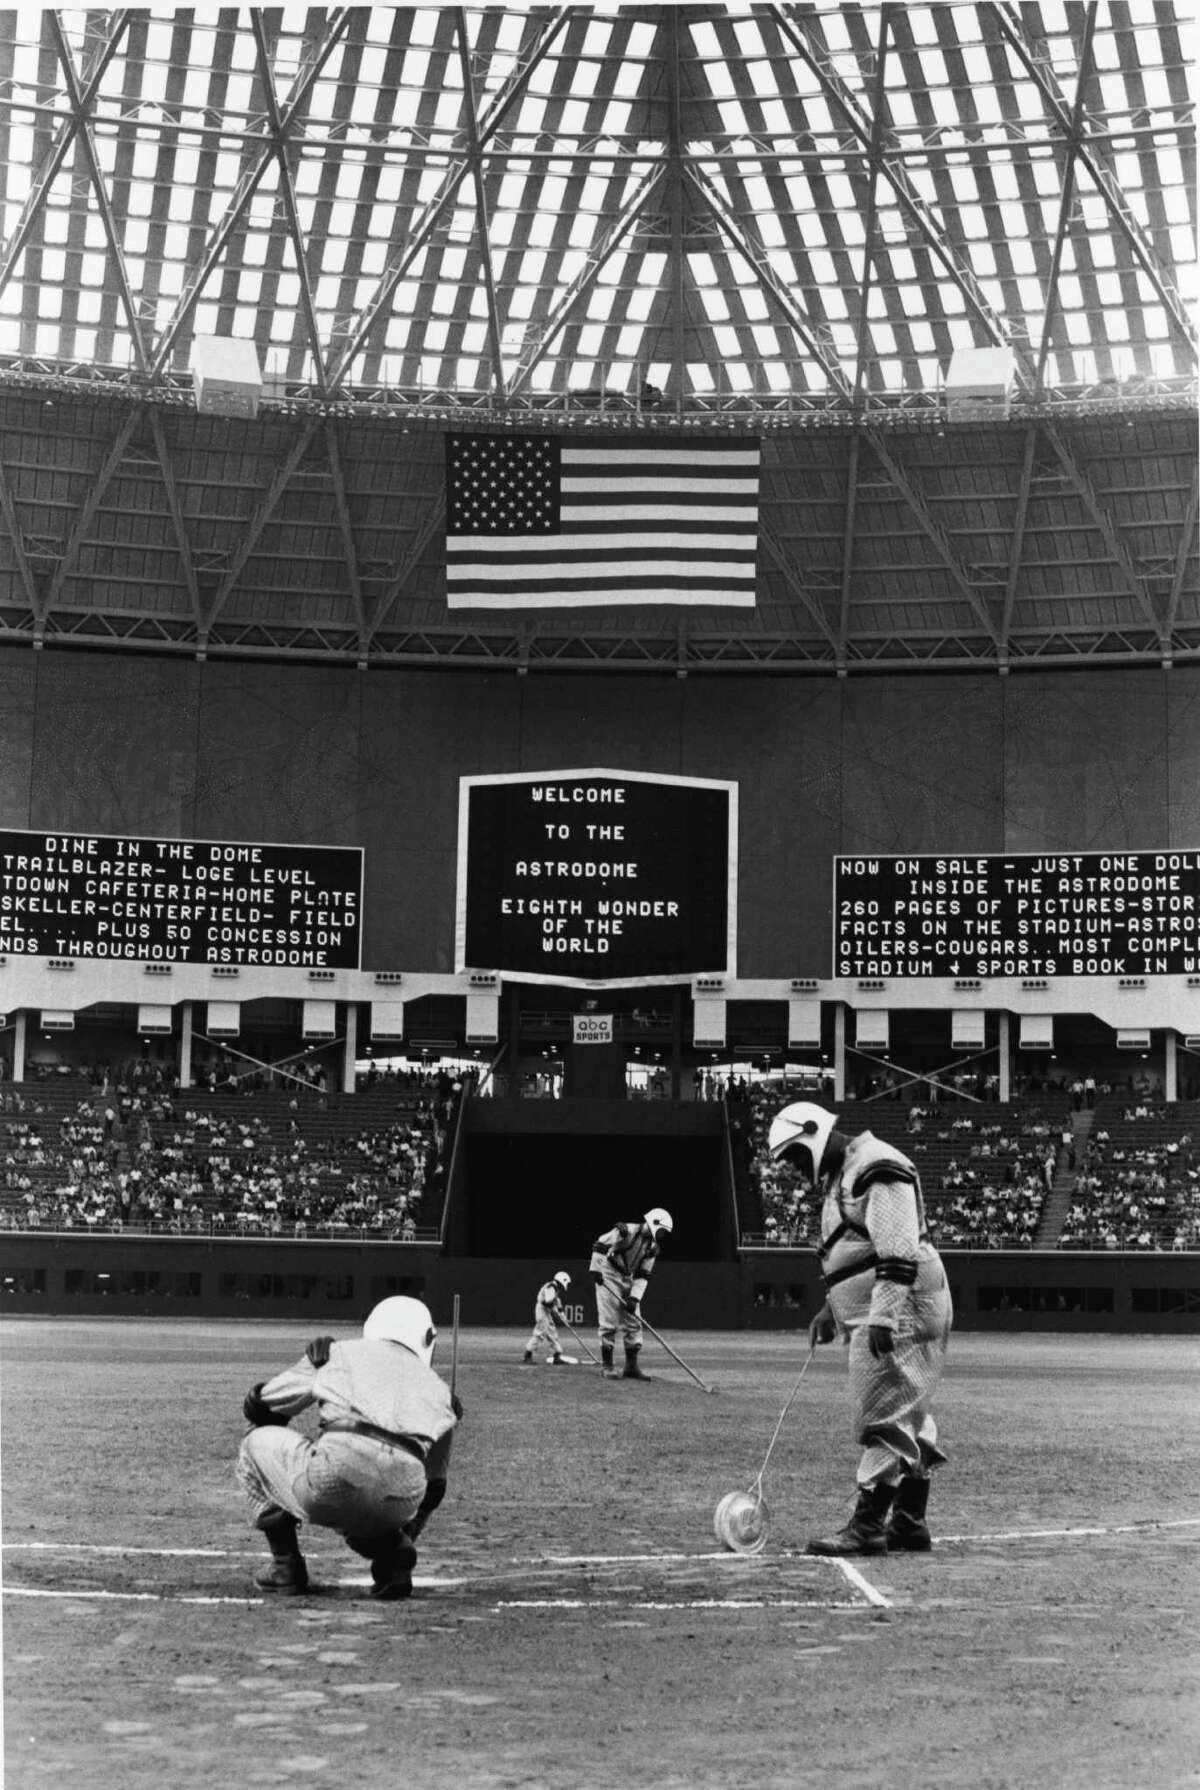 Groundskeepers are forced to wear 'futuristic' spacesuit uniforms as they prepare the diamond for the first game in the Astrodome, Houston, Texas, April 12, 1965. The dome, as seen here, had a translucent roof to allow the grass to grow but glare caused the panes to be painted over, which in turn caused the grass to die. Eventually Monsanto invented AstroTurf, the first and most famous artificial grass replacement.